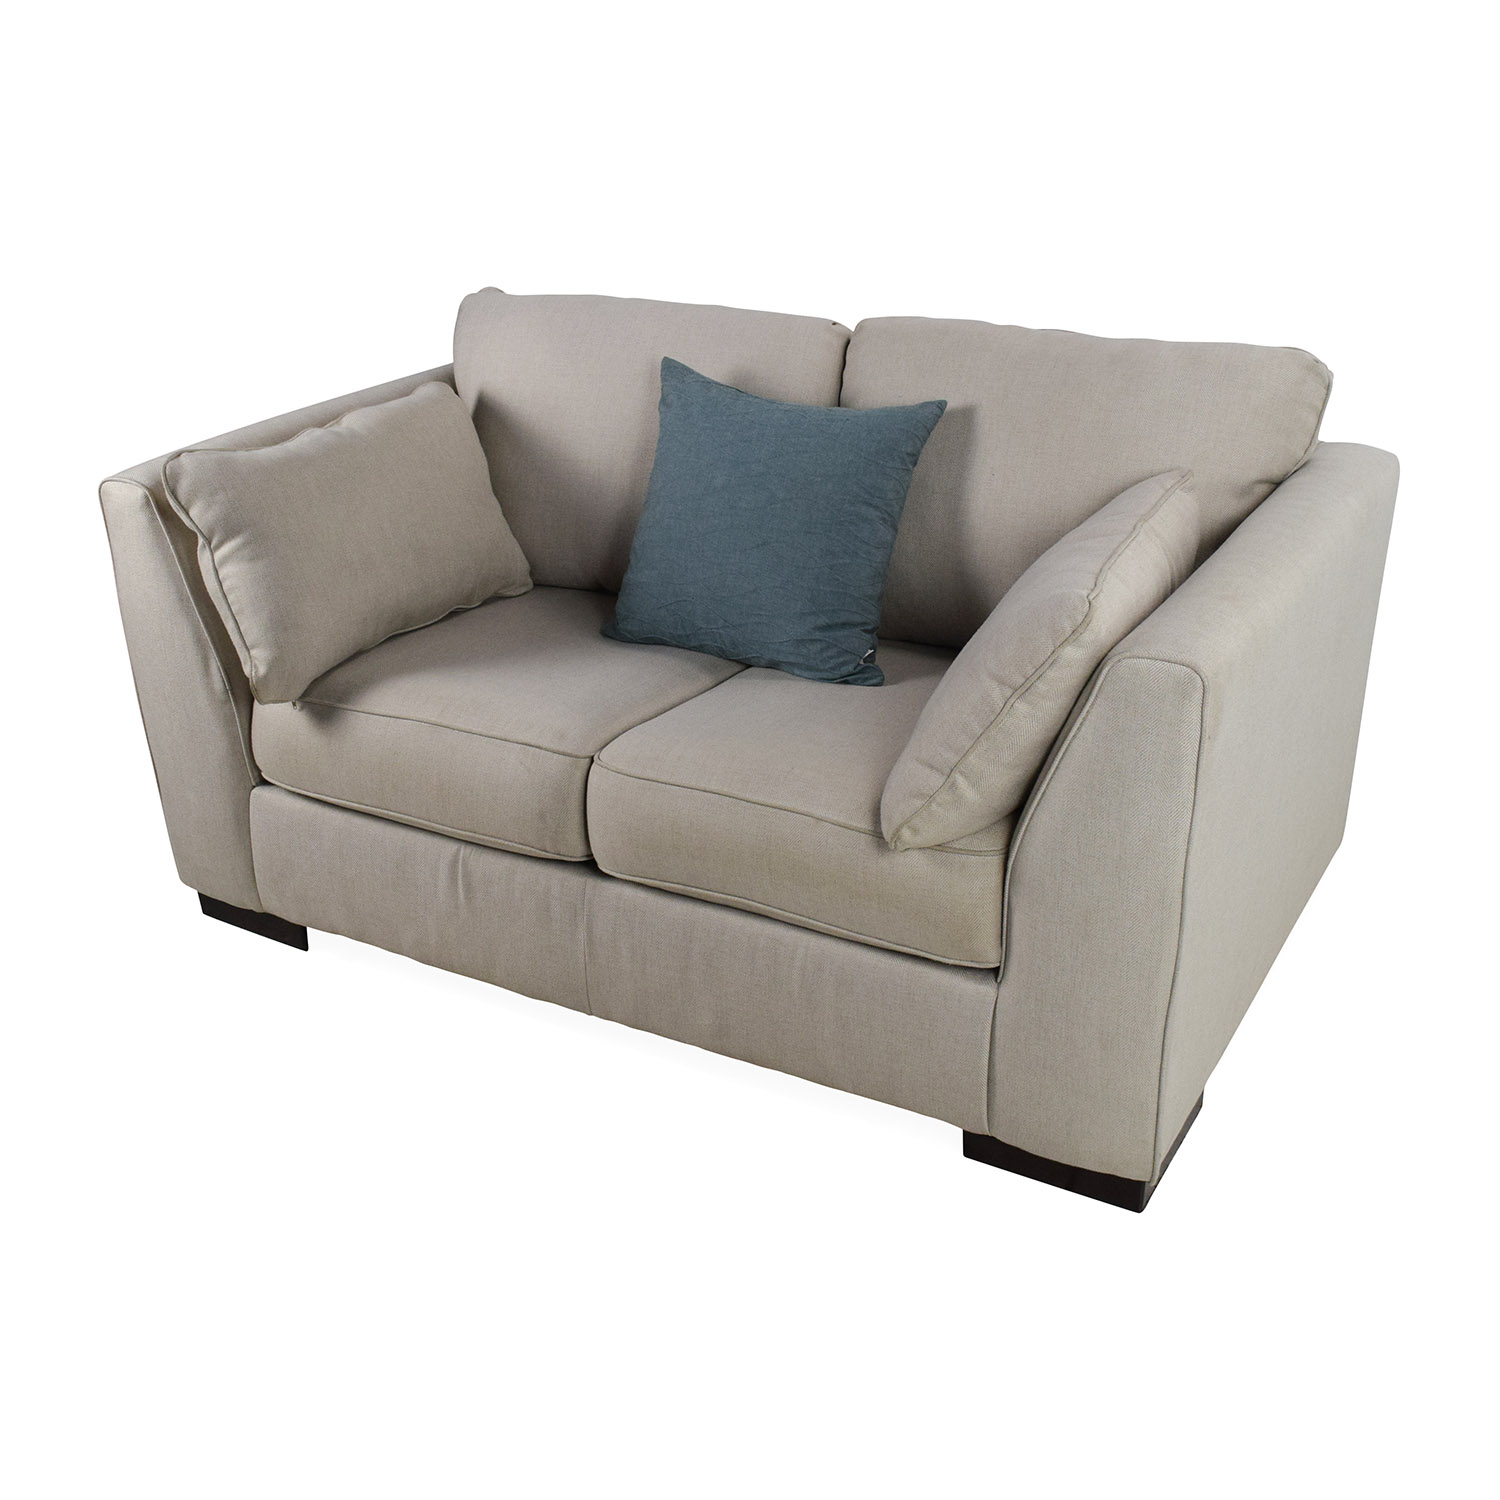 75 off ashley furniture ashley furniture pierin loveseat sofas Ashley couch and loveseat